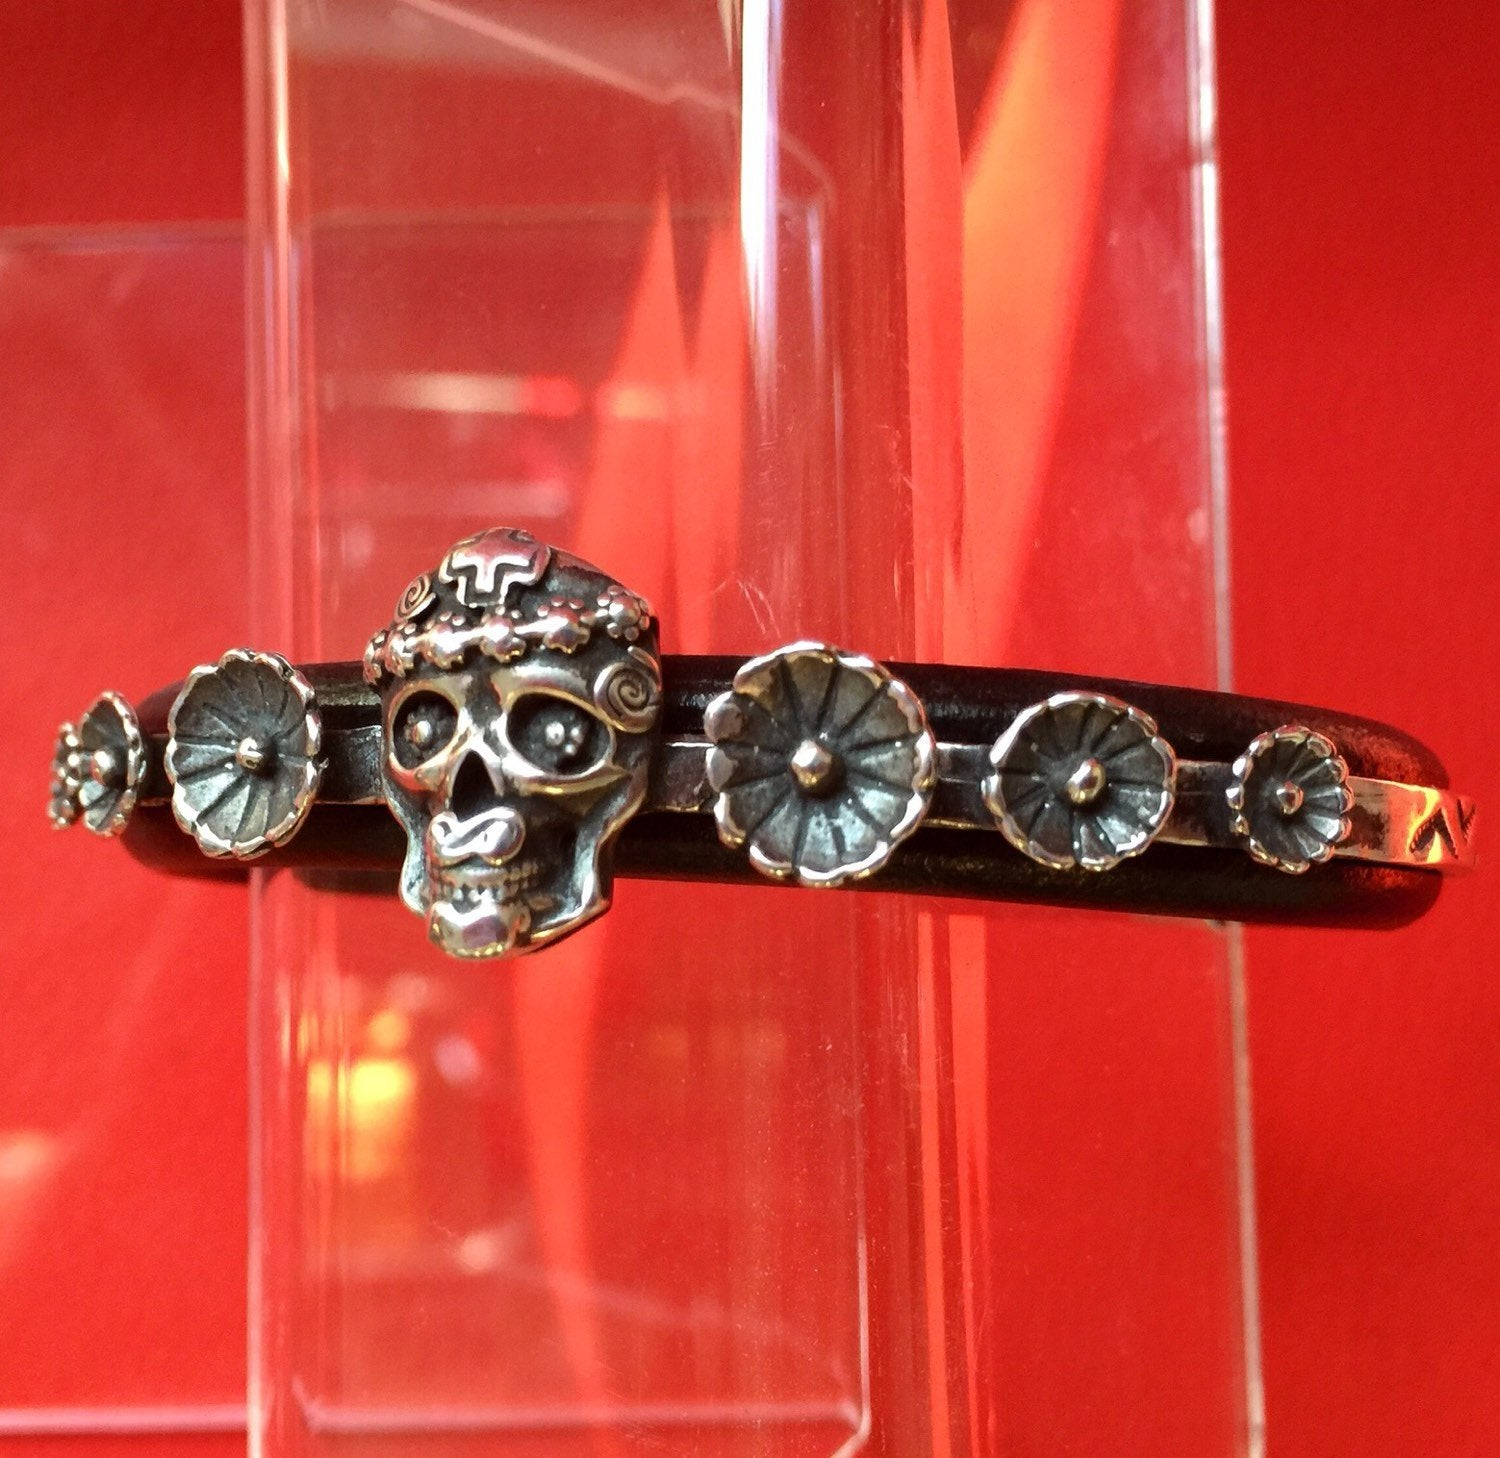 Mi Vida Loca Skull with Flowers Sterling  Silver Inlayed on Leather Cuff